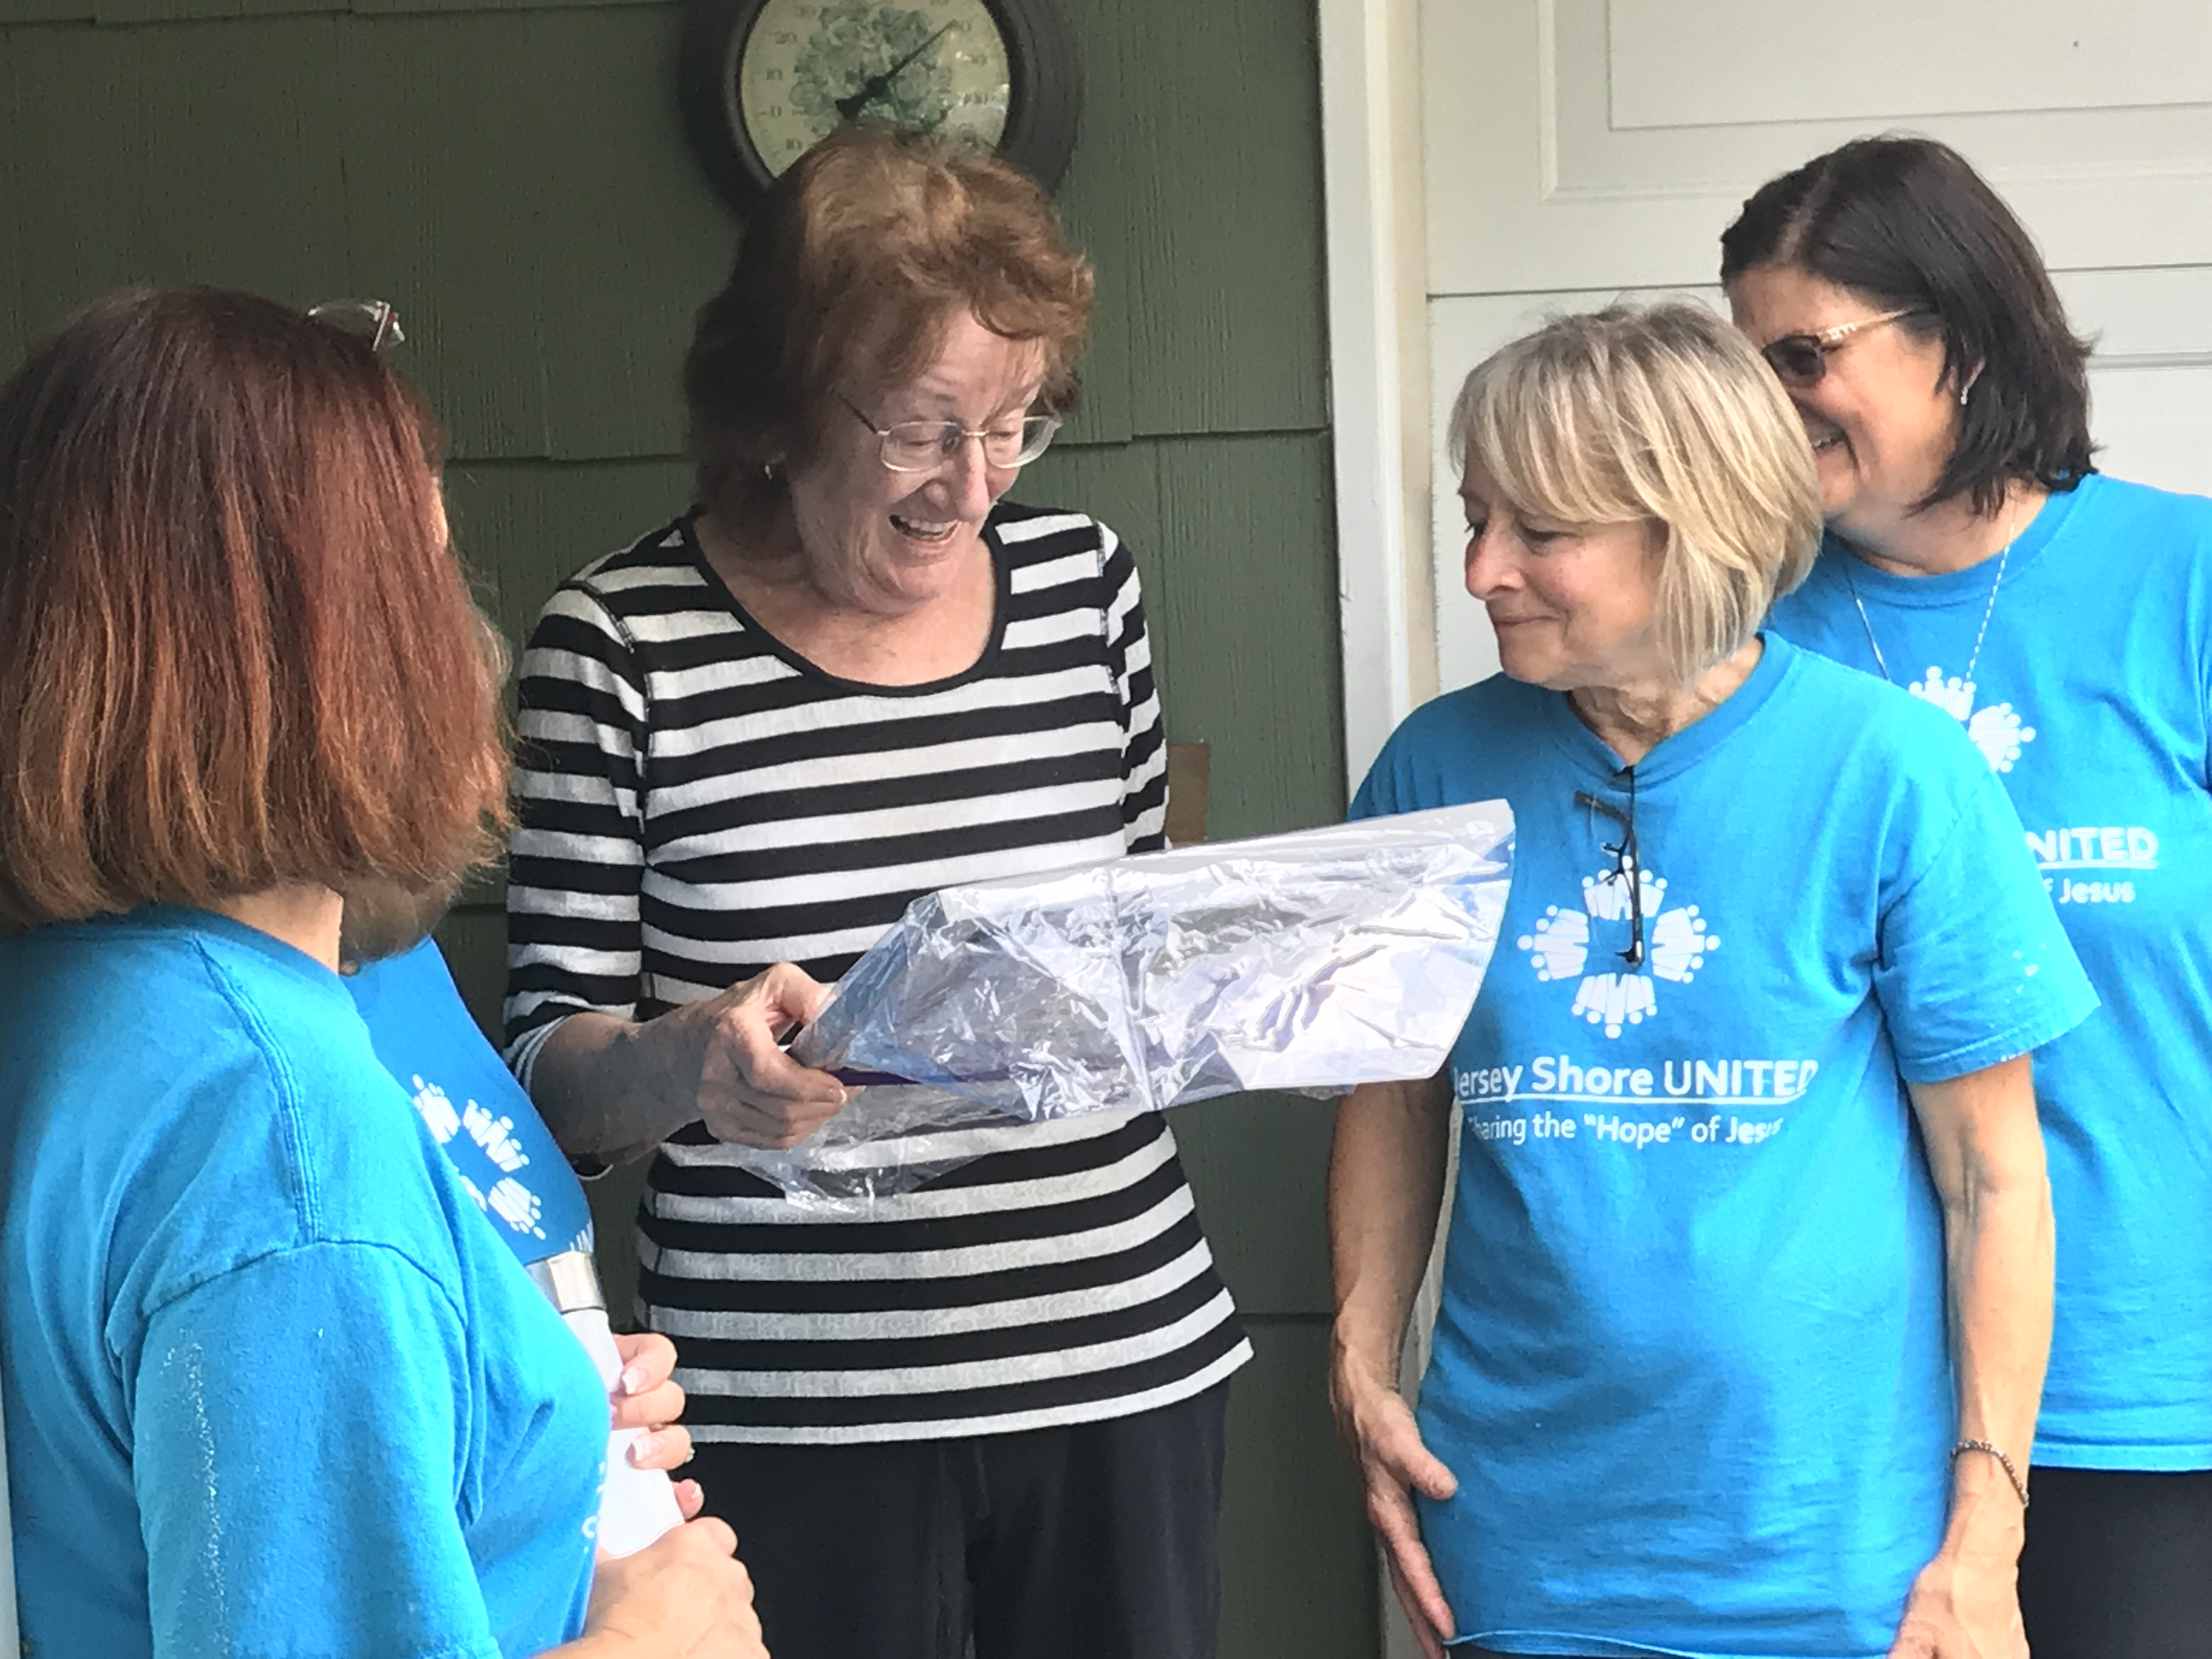 Renate Kupat receives a painting from the volunteers who helped her move back into her house in Brick's Greenbriar development, Oct. 4, 2018. (Photo: Daniel Nee)